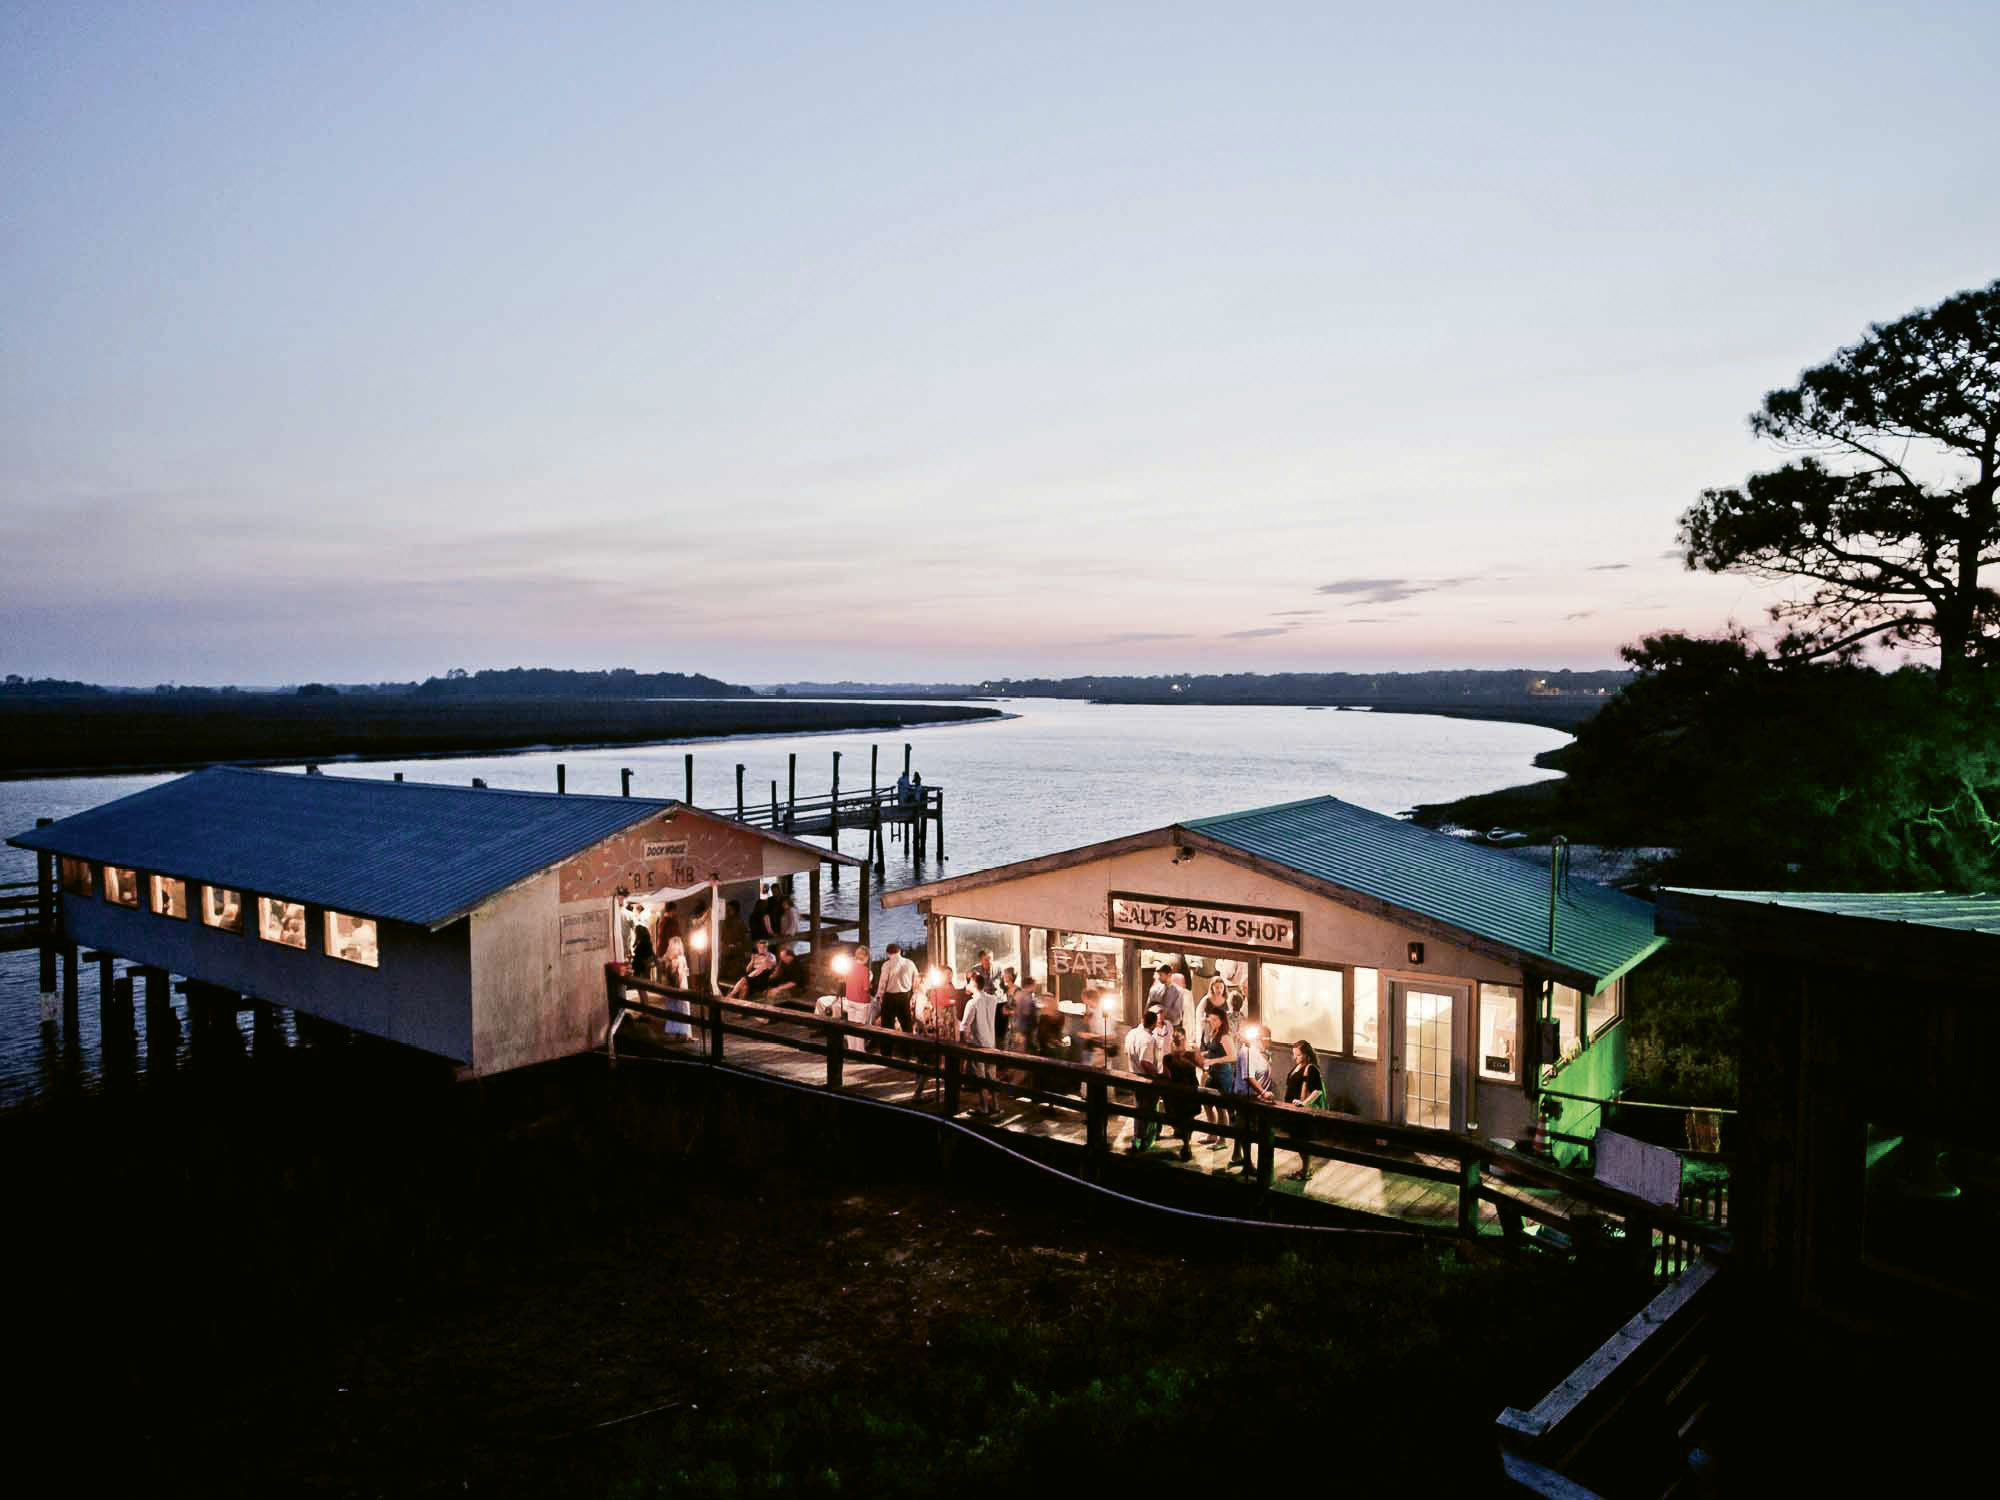 Rebuilt and better than ever, Bowens Island Restaurant continues to serve up great beer, seafood, and Intracoastal views; photograph by Peter Frank Edwards